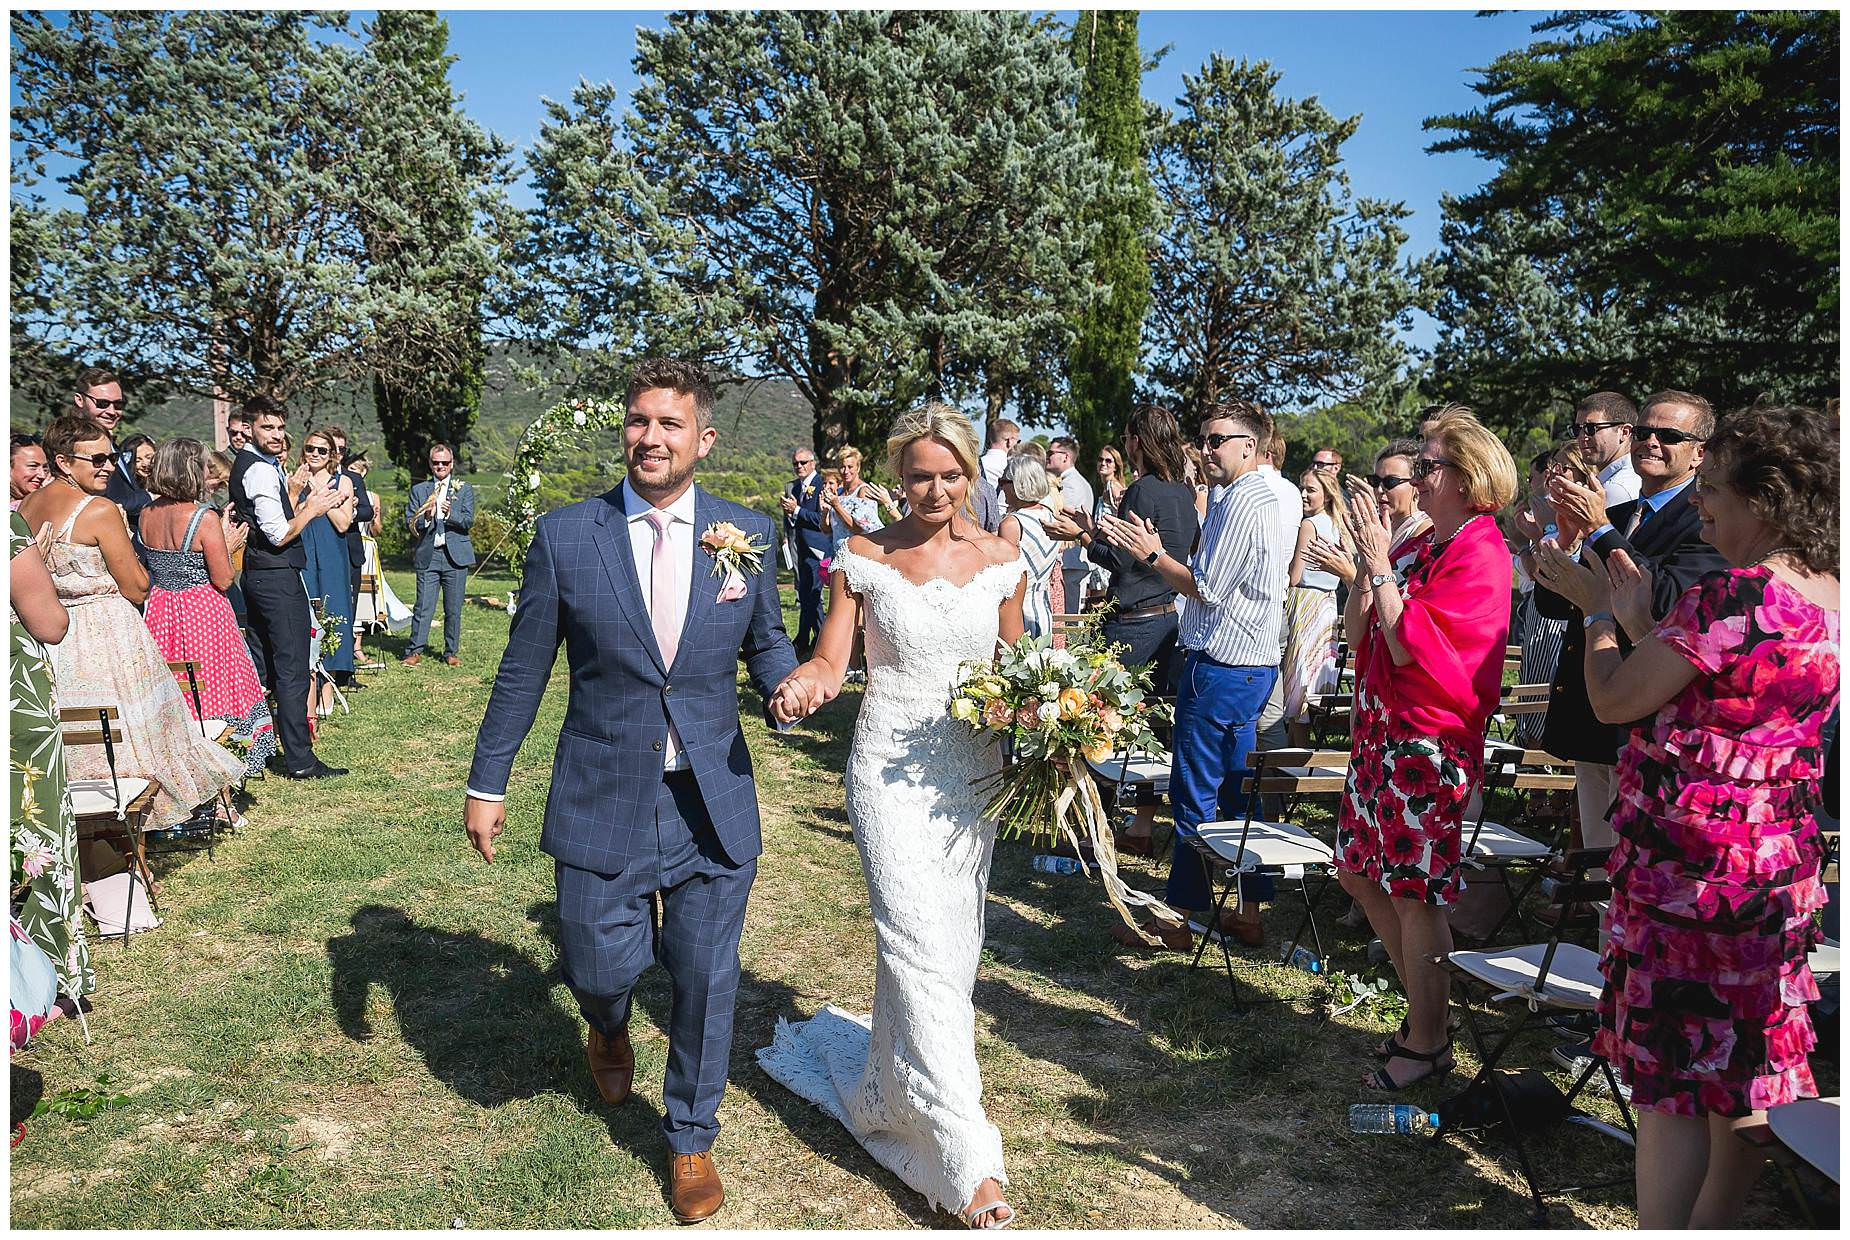 Walking down the aisle at Domaine Saint Germain